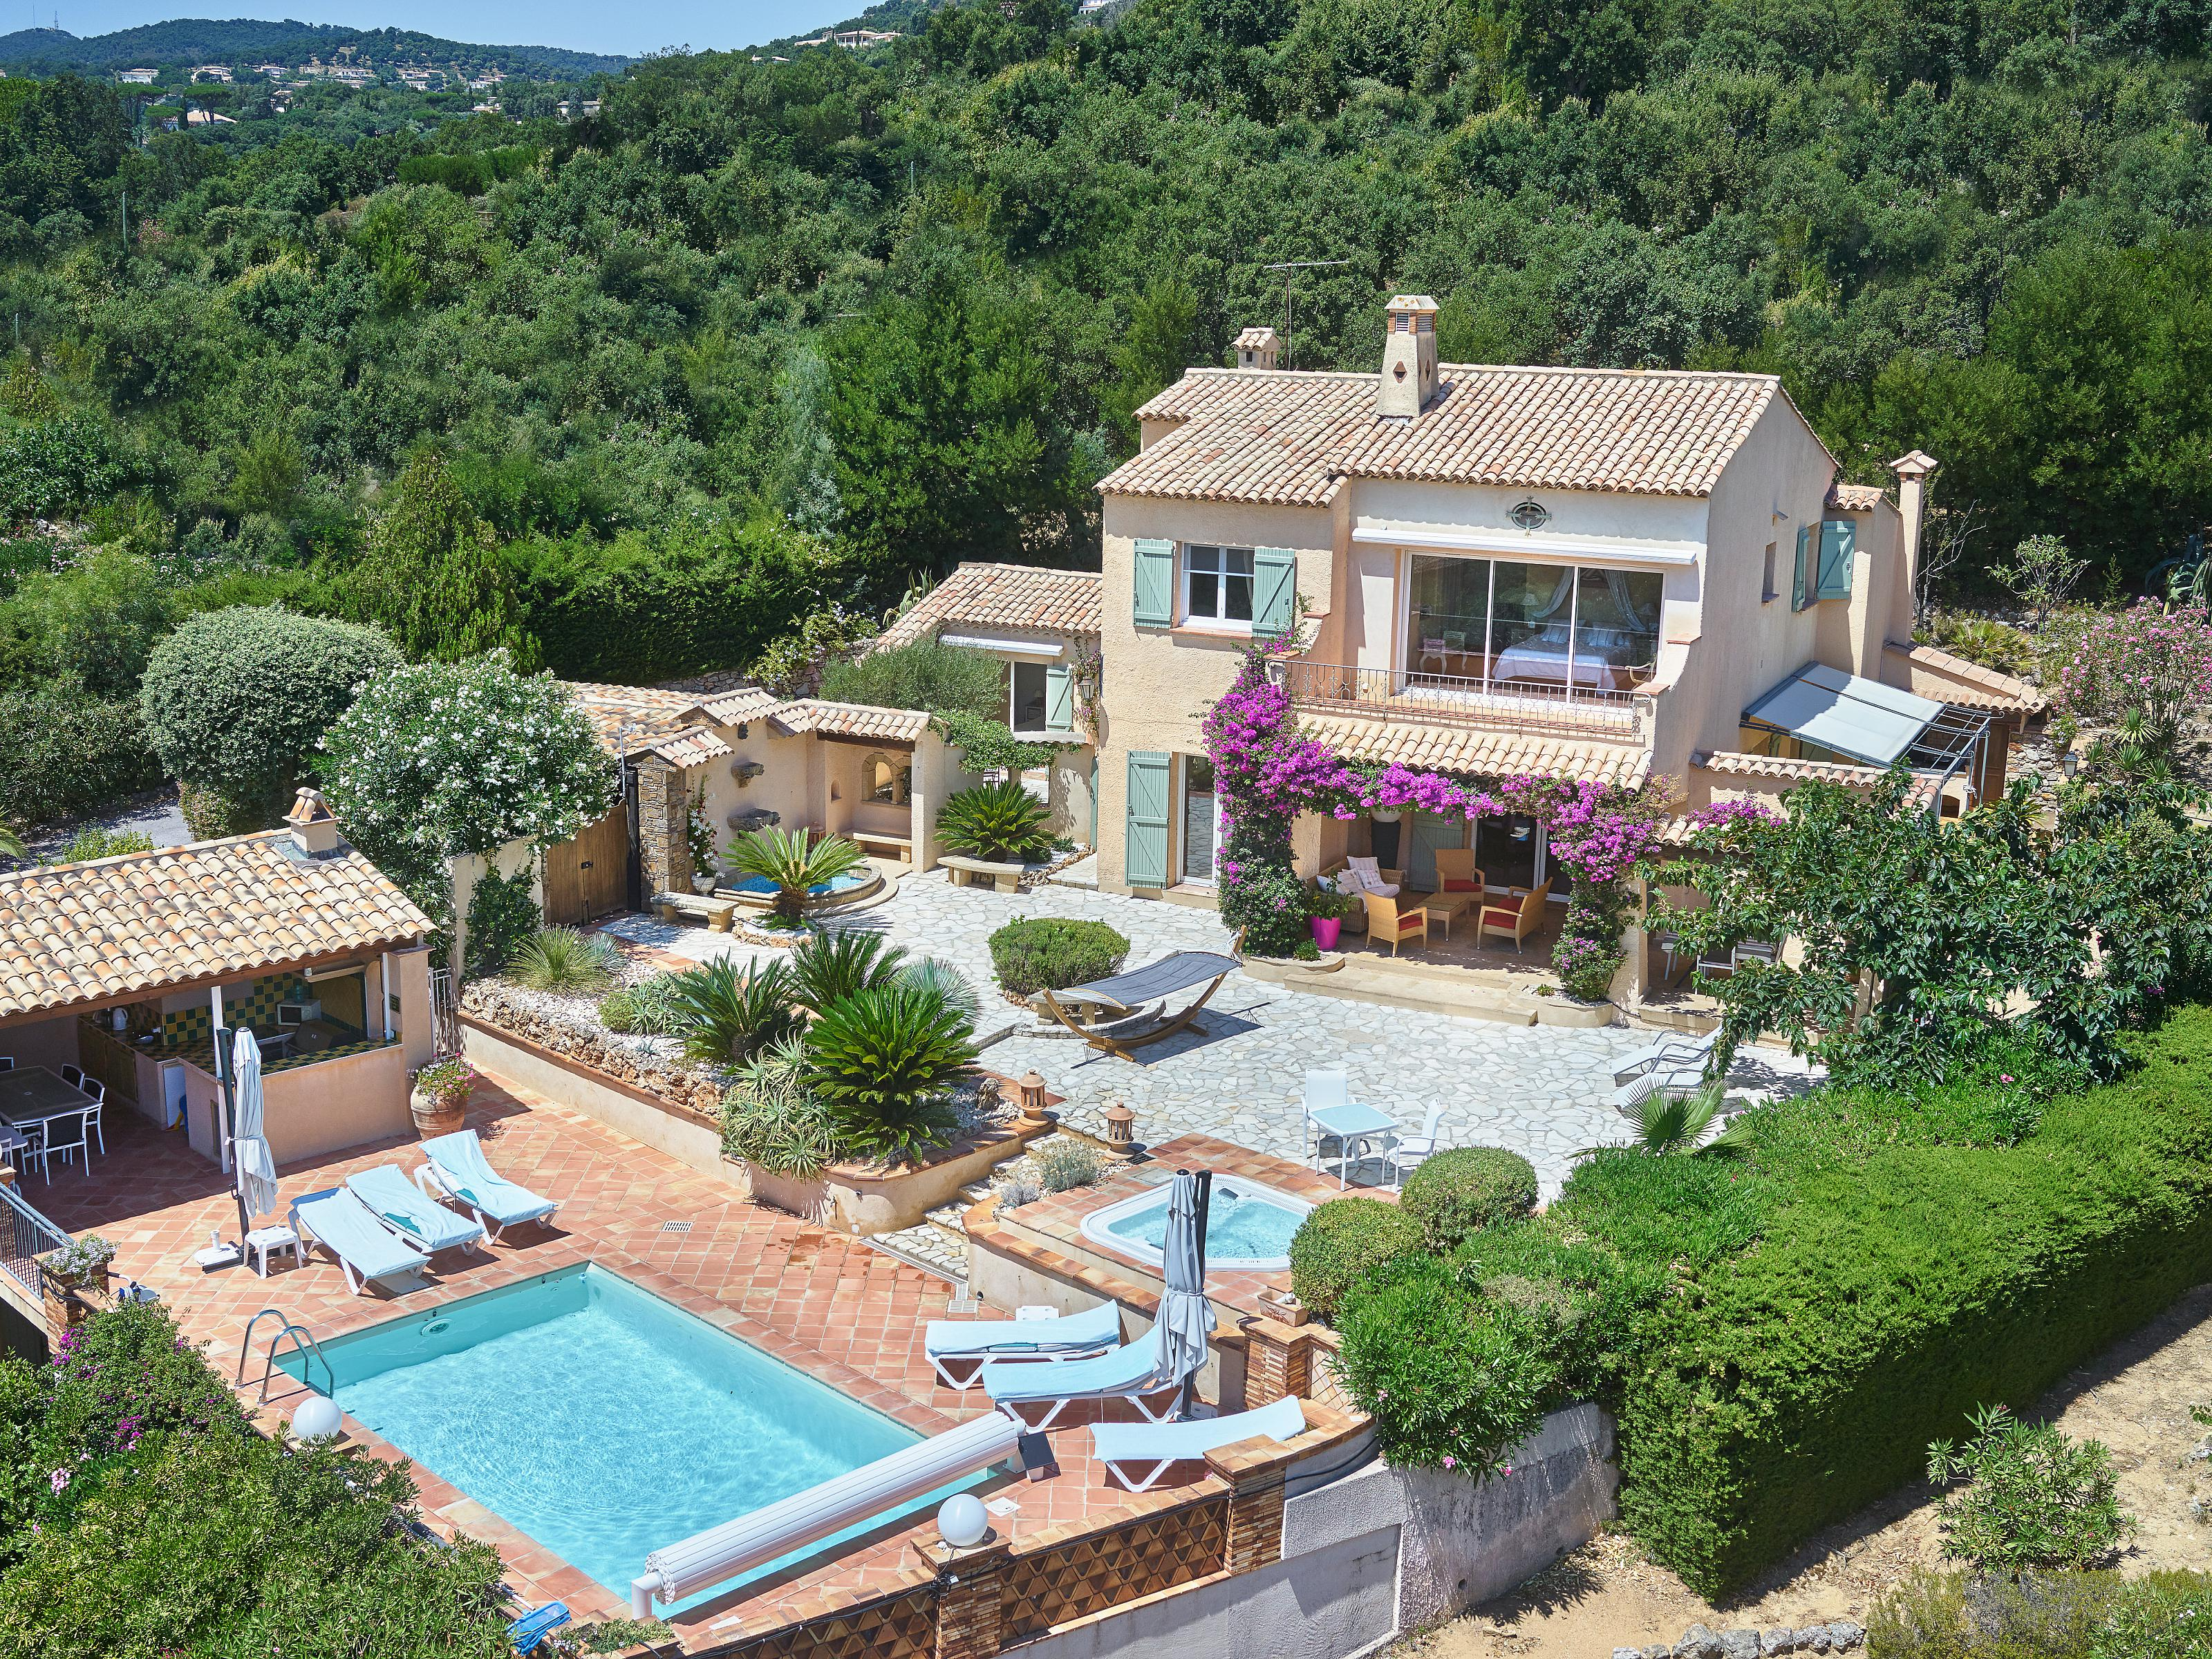 Single Family Home for Sale at Charming house for sale with beautiful views over the bay of Saint-Tropez Grimaud Grimaud, Provence-Alpes-Cote D'Azur 83310 France